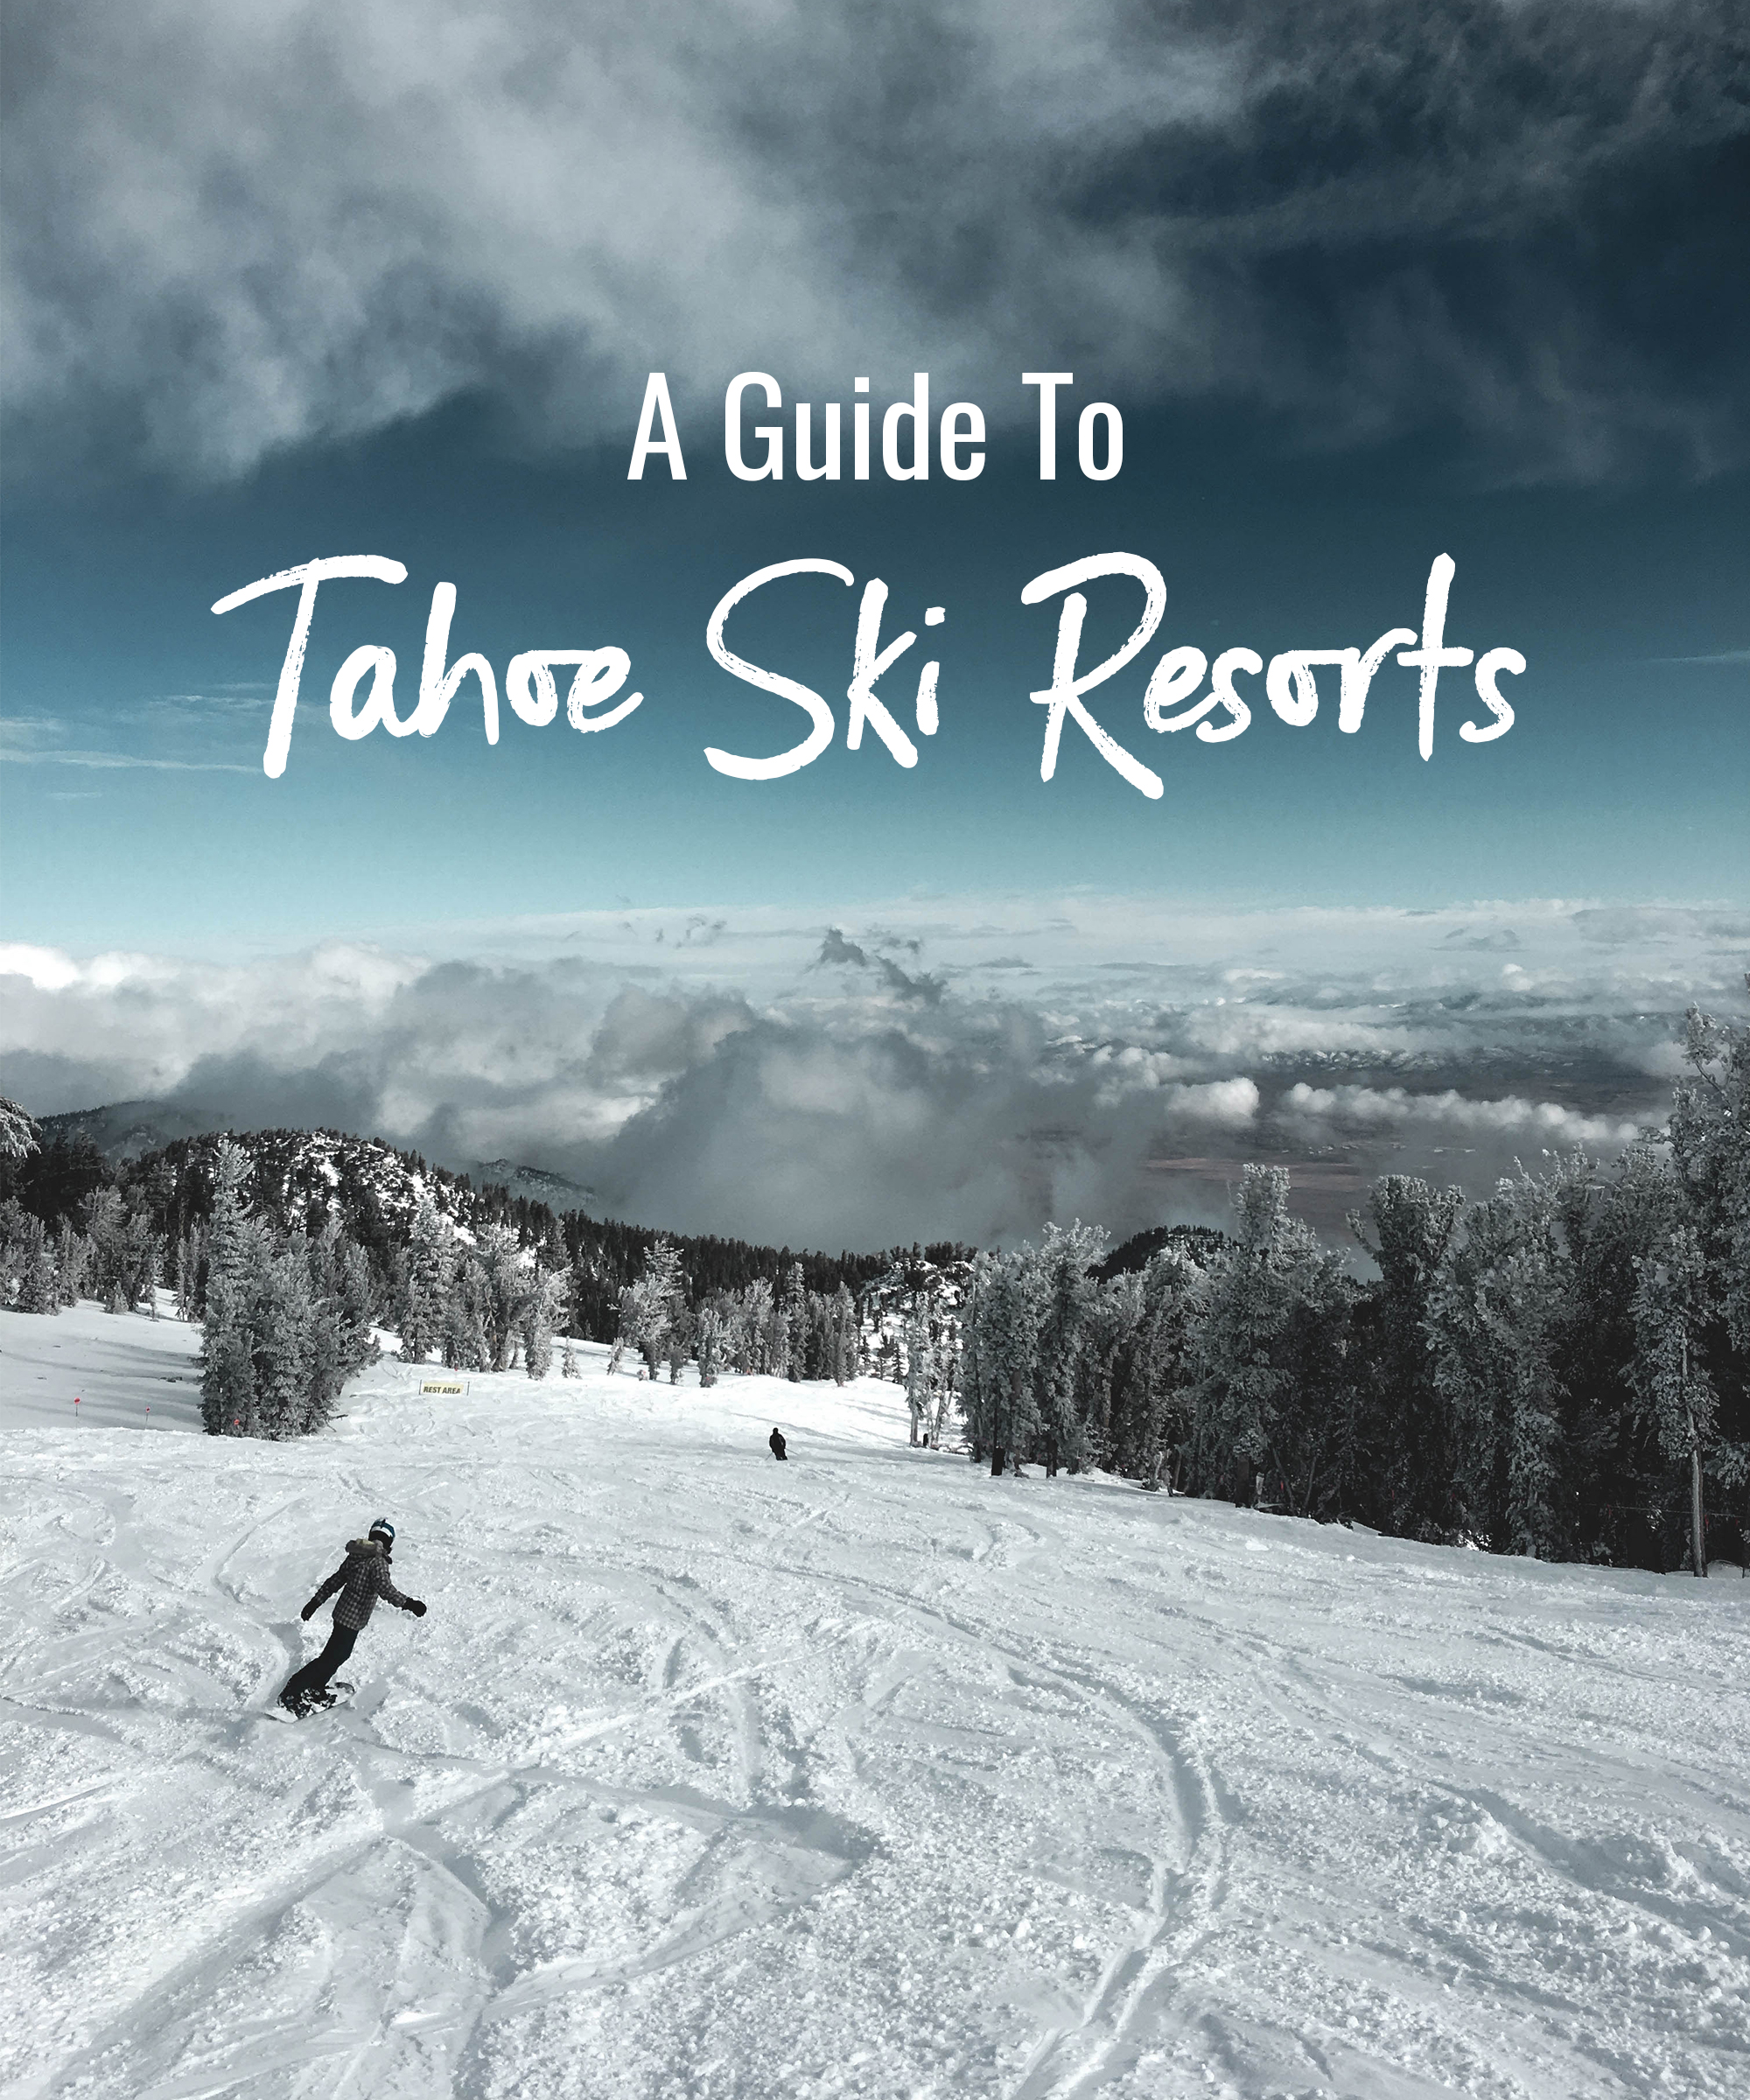 A Guide to Tahoe Ski Resorts